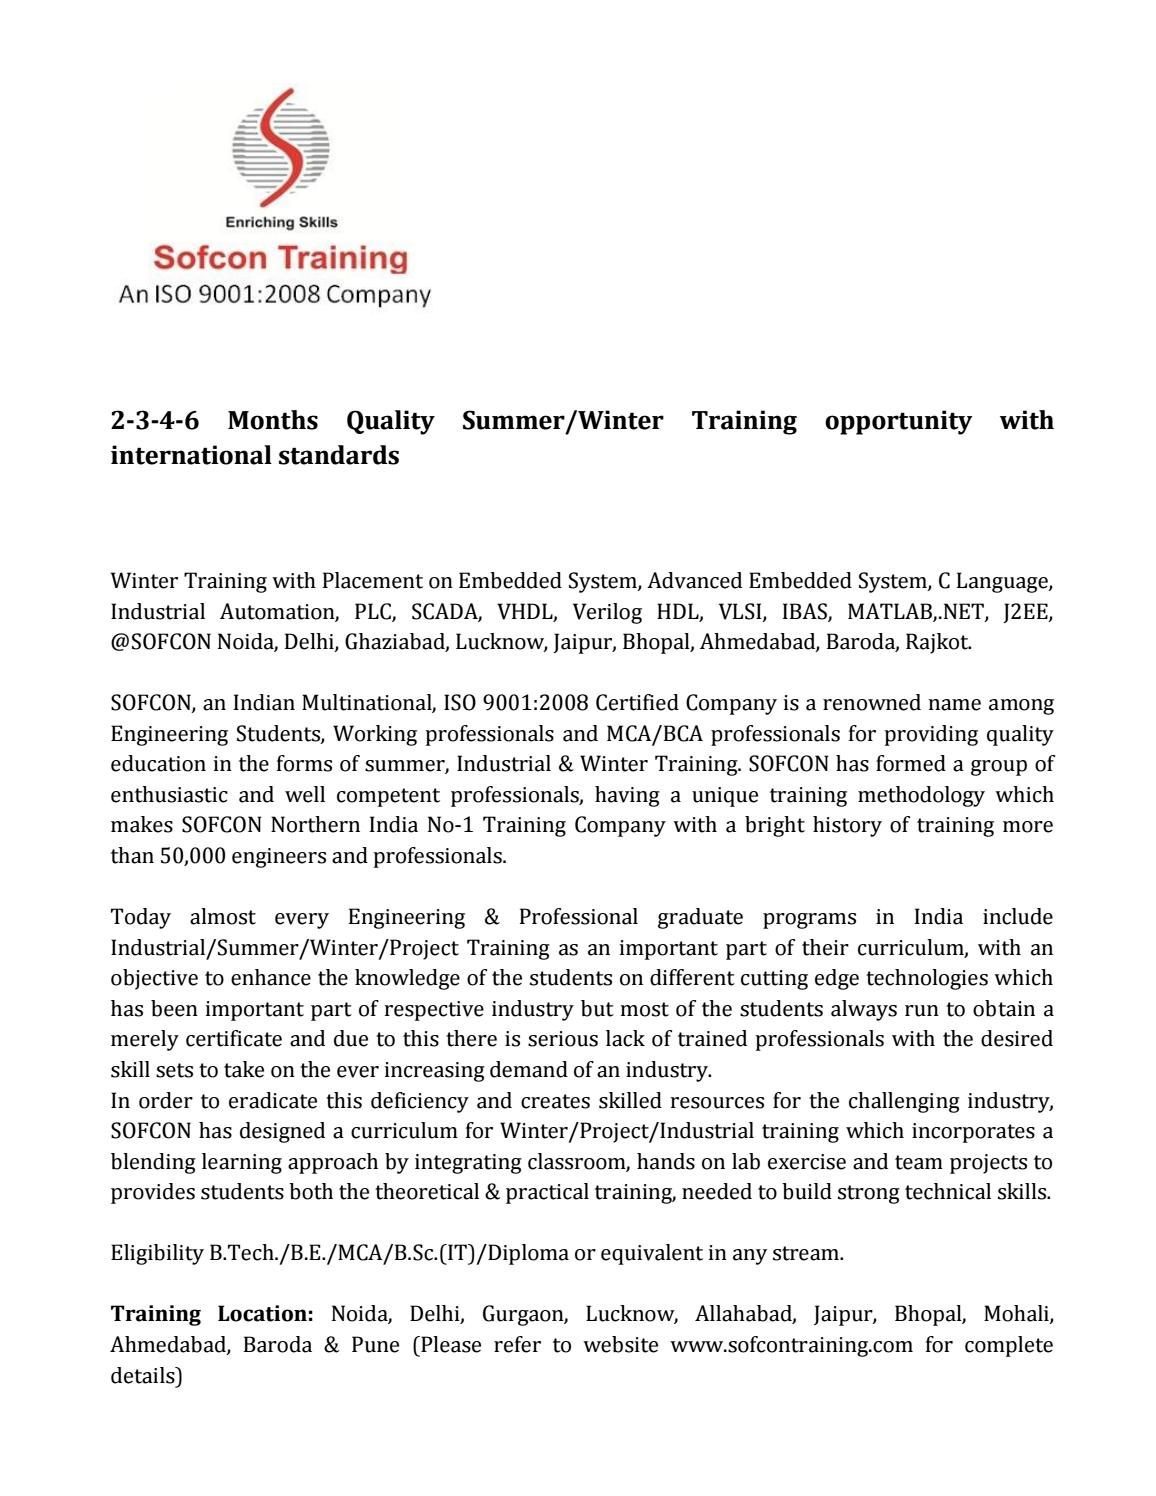 2 3 4 6 months summer training winter training by Sofcon